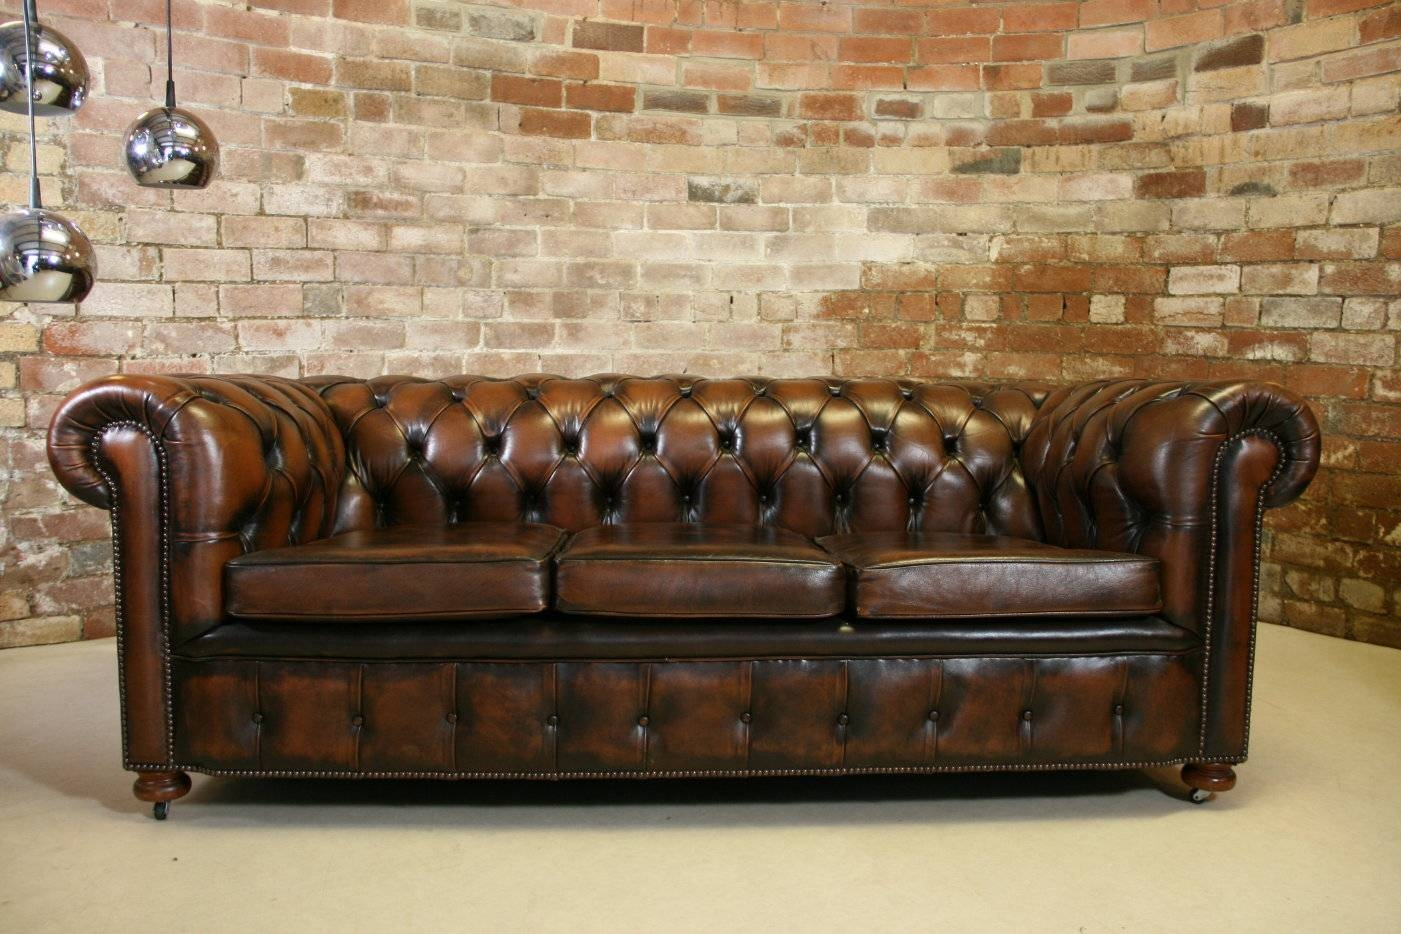 Clean And Bright Chesterfield Sofa — New Lighting New Lighting within Leather Chesterfield Sofas (Image 12 of 30)